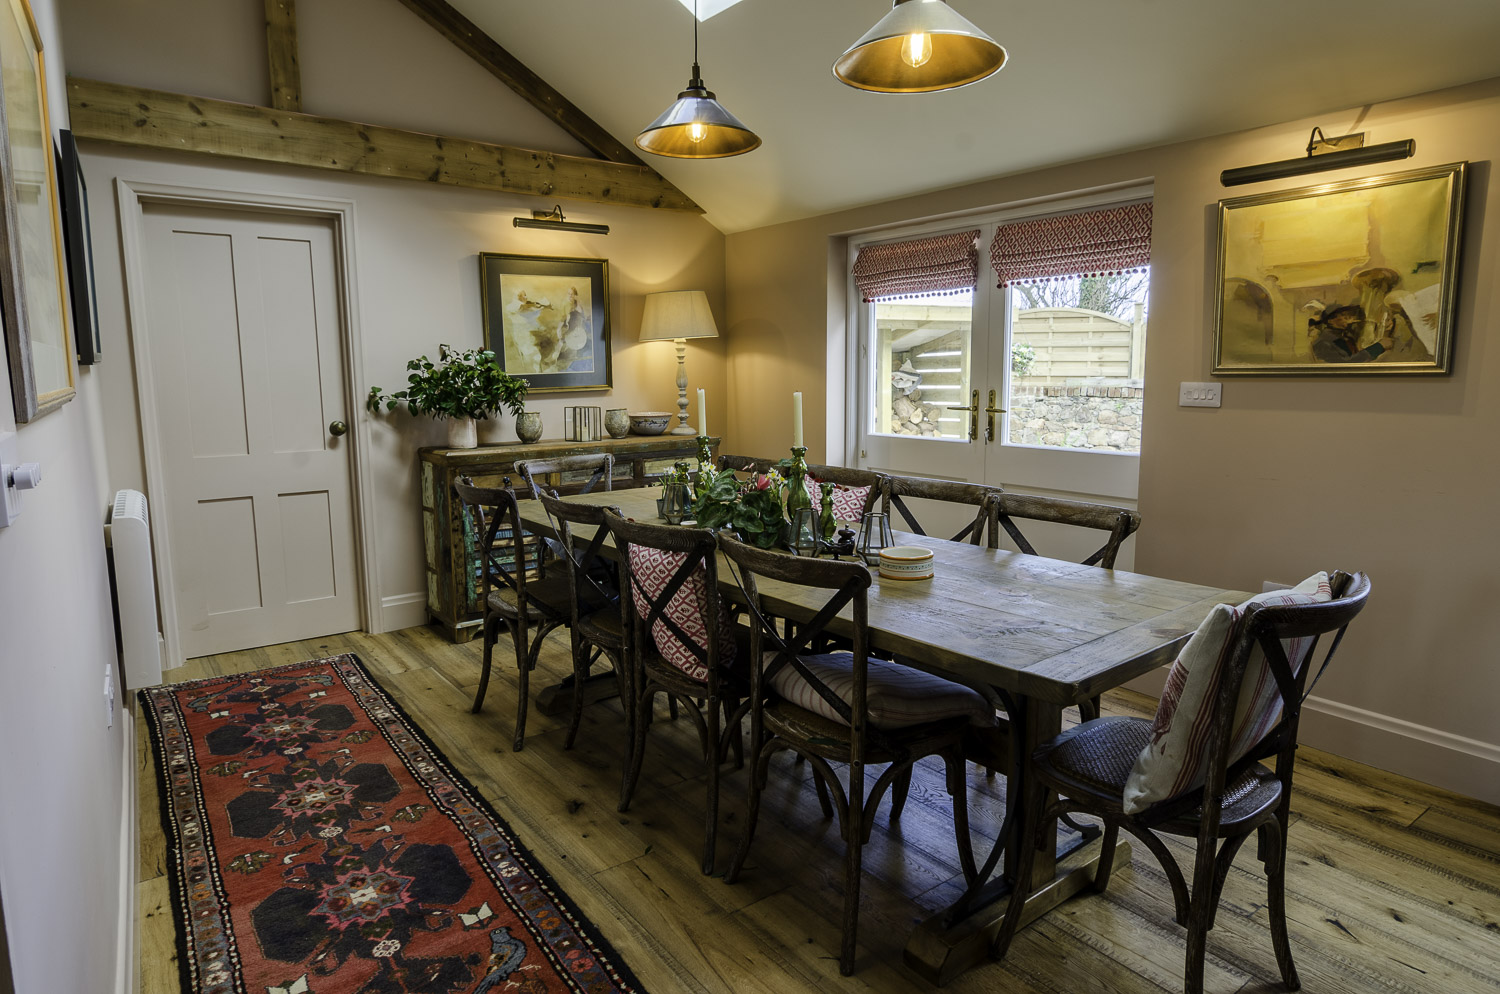 country_home-dining_room-1500pw-500kb.jpg